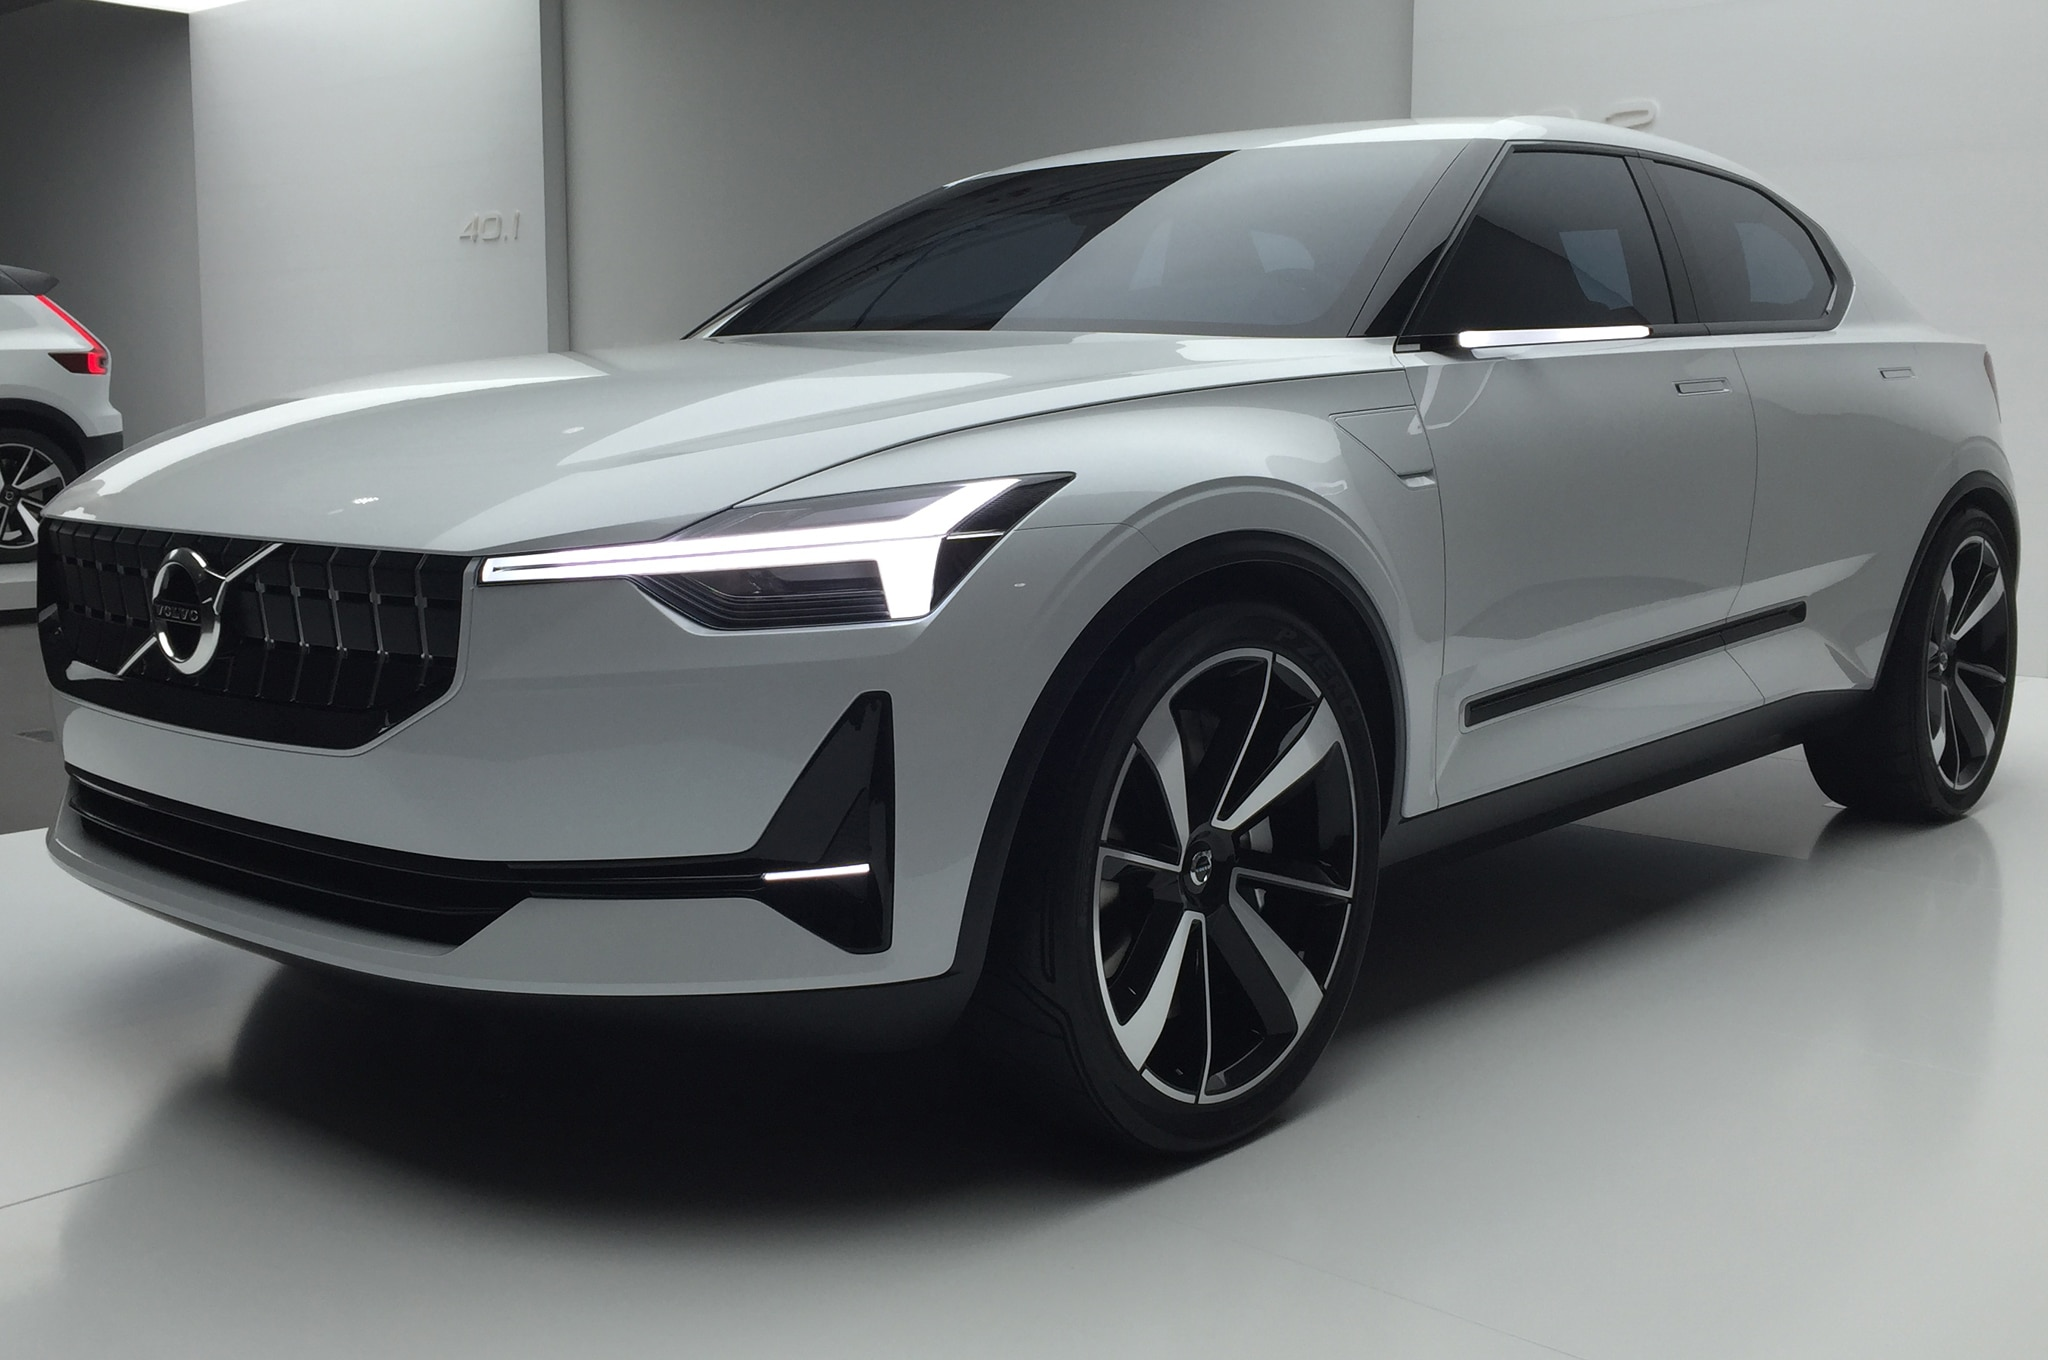 First Volvo EV To Have 250 Mile Range & $35k-40k Price Tag